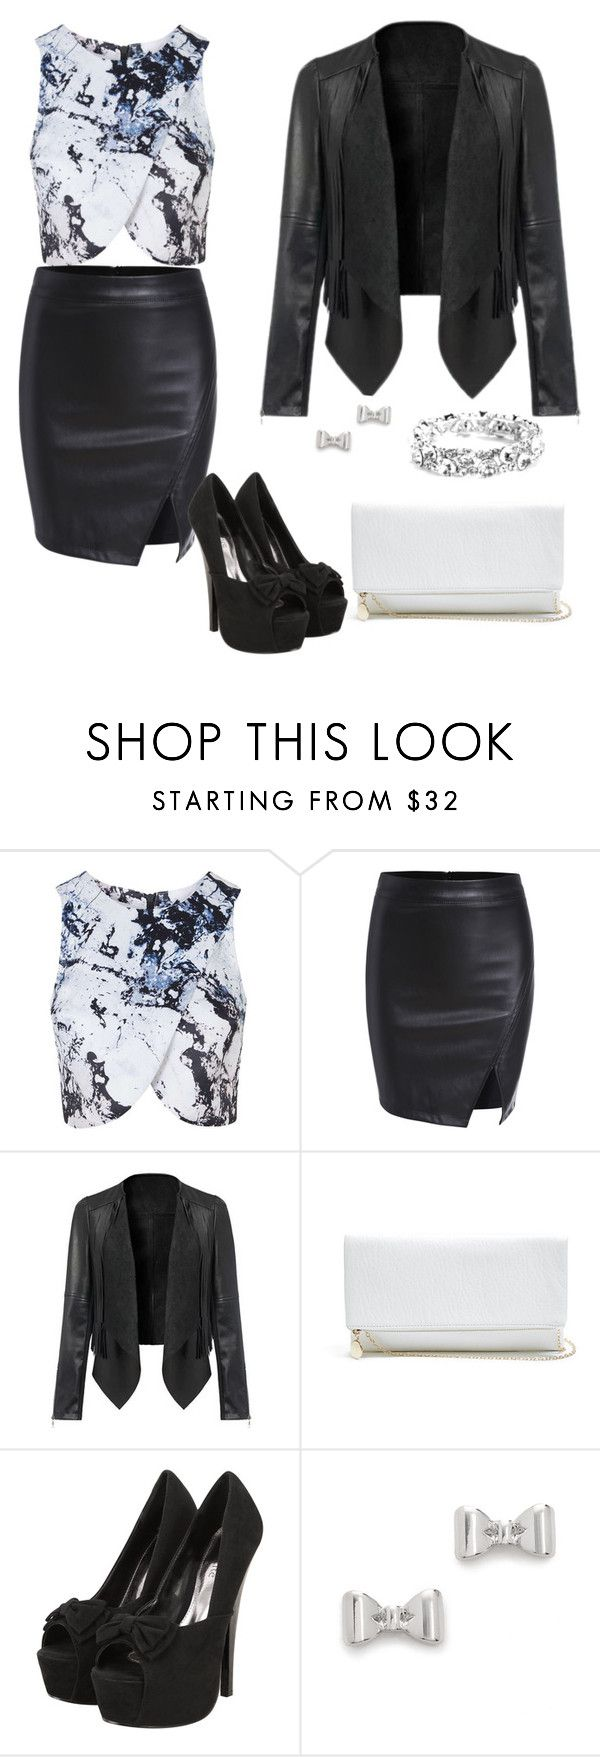 """""""Outwear#79"""" by elusiin ❤ liked on Polyvore featuring Topshop, GUESS and Marc by Marc Jacobs"""